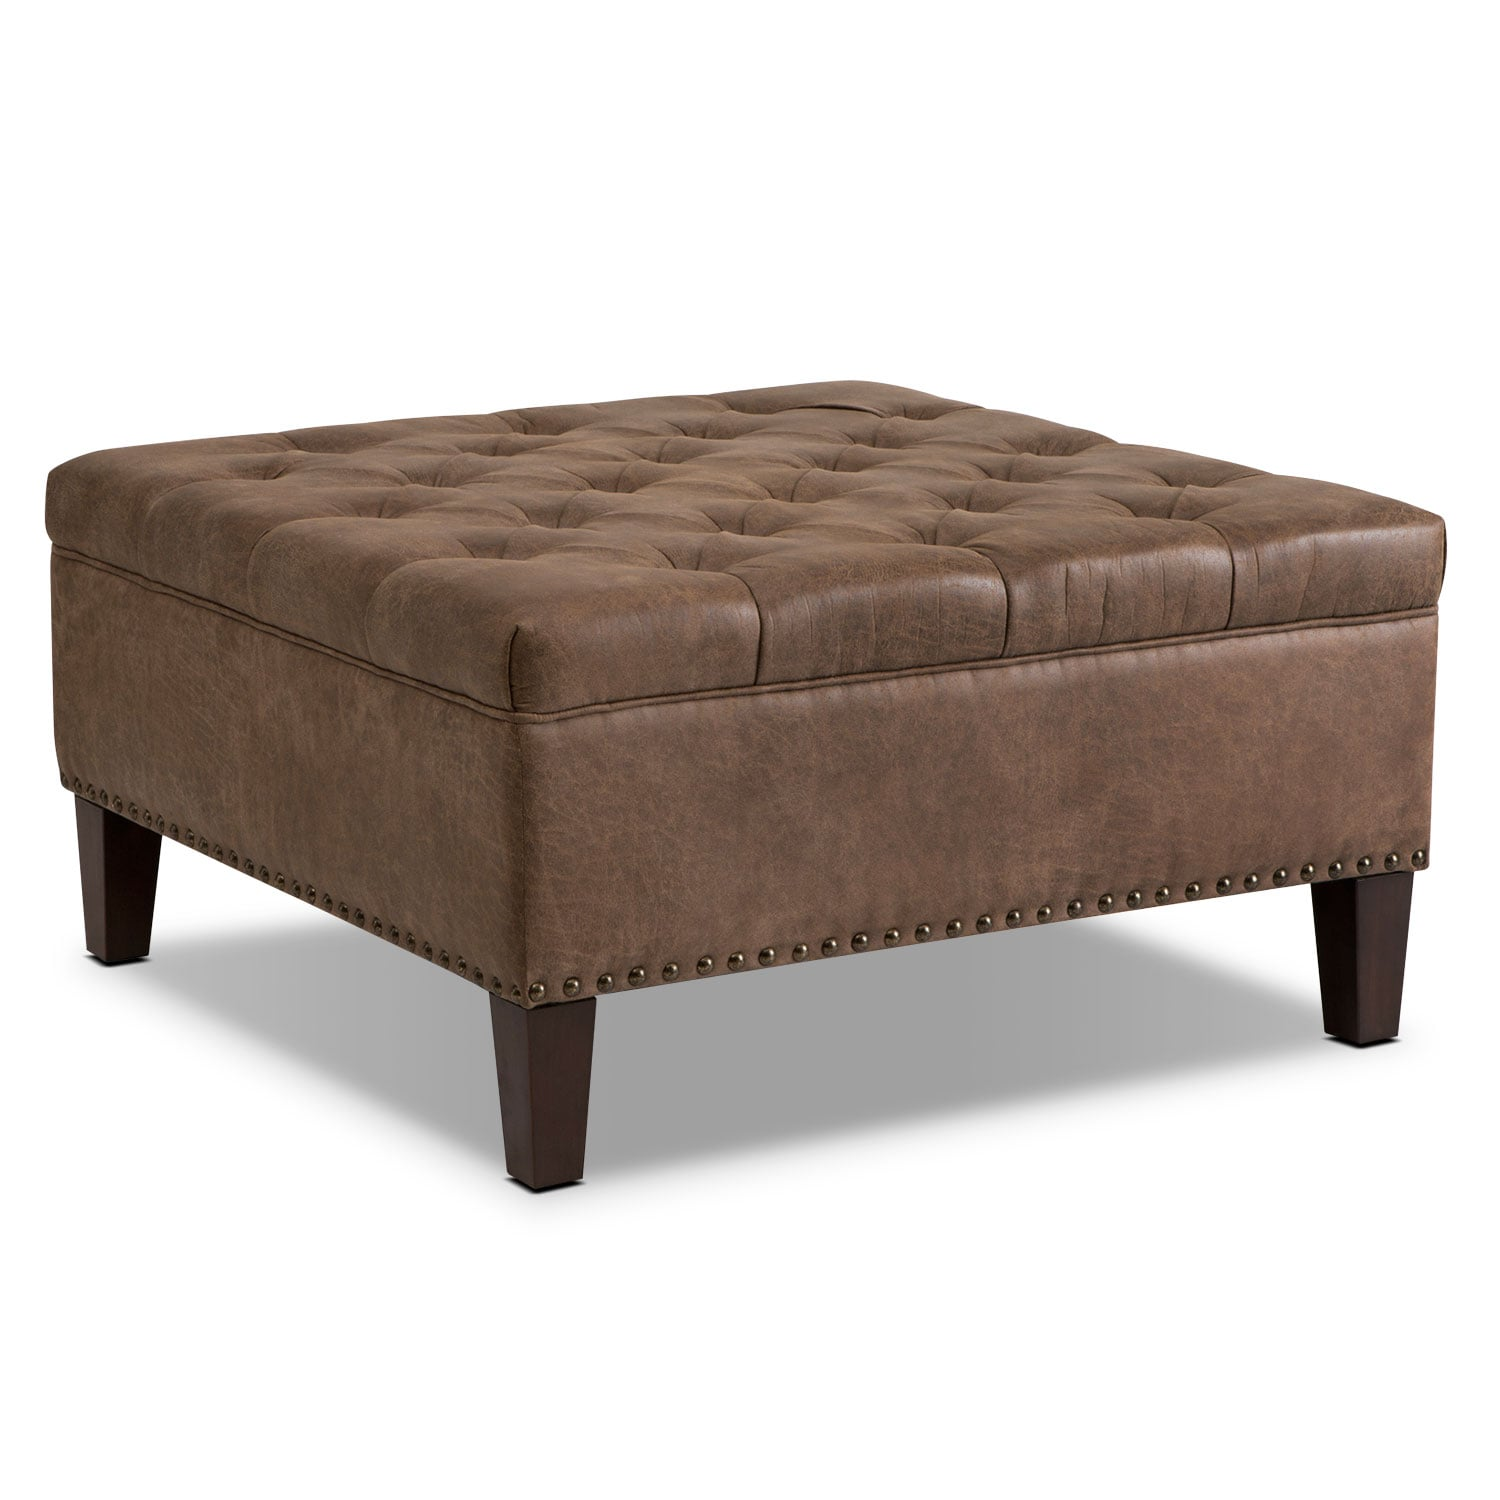 Razi Cocktail Ottoman - Brown